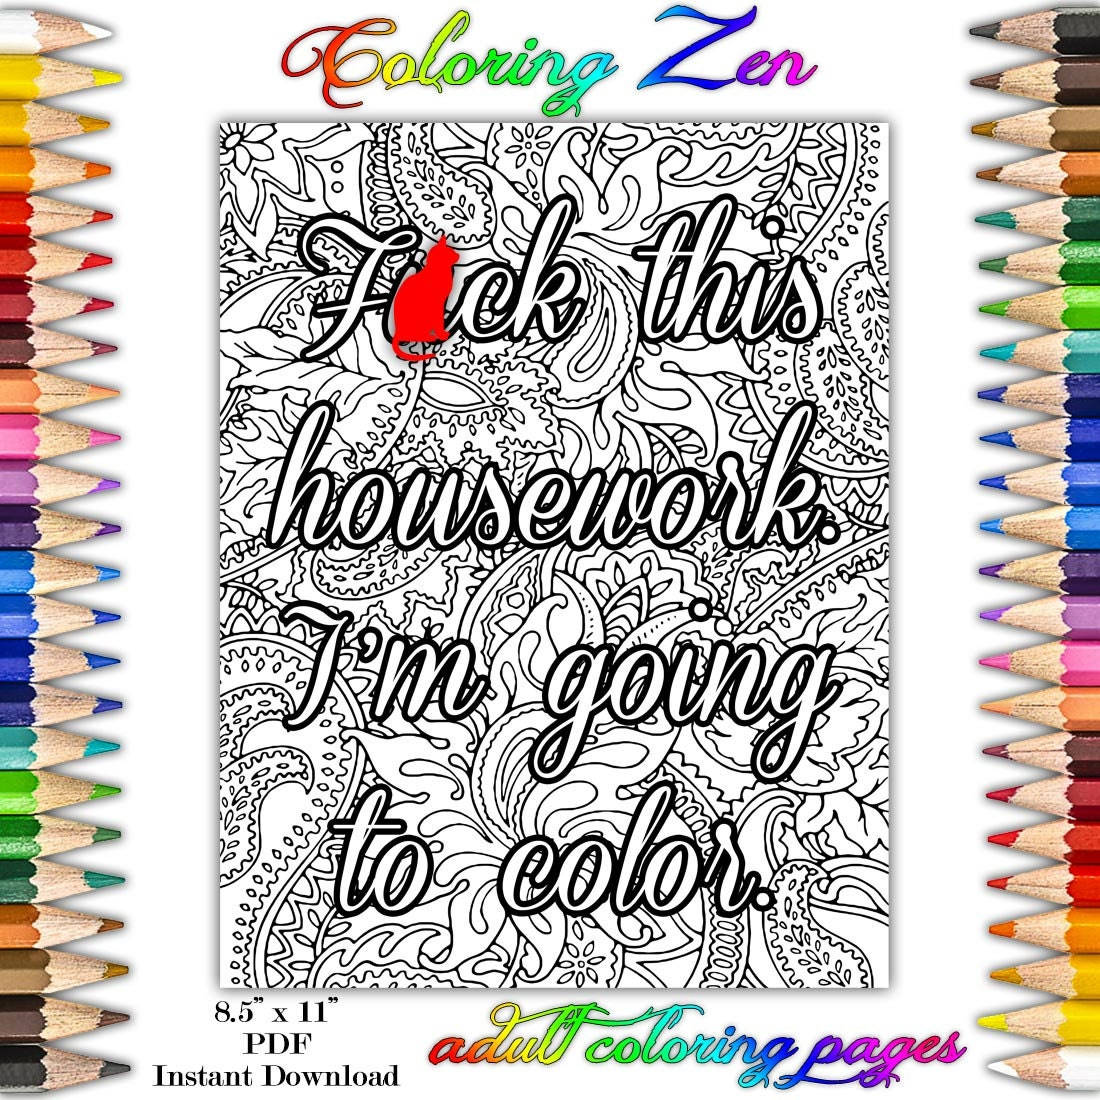 Sweary Coloring Book Download : Fck this Housework I m Going to Color Sweary Adult